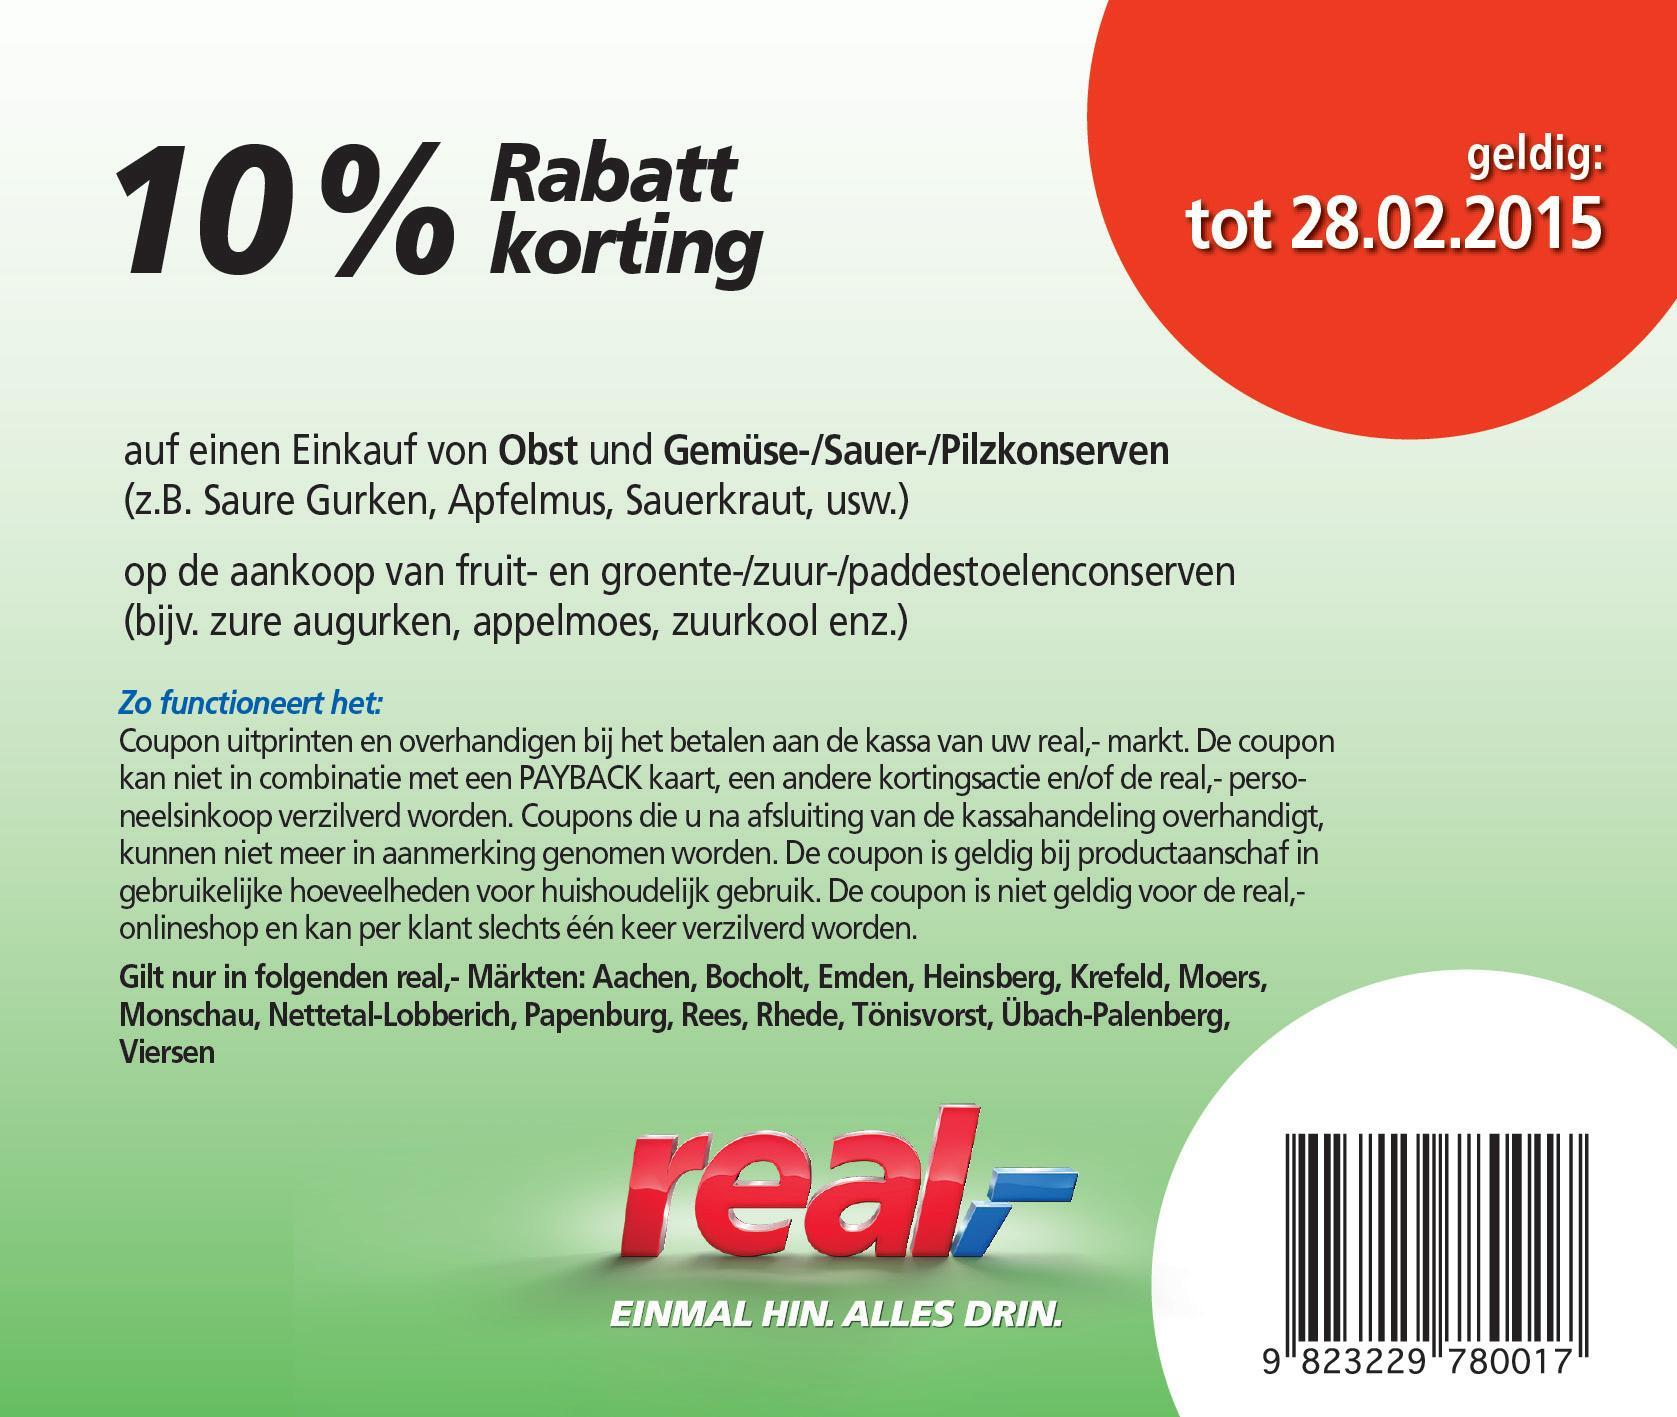 coupons_feb_2015_nl-pgriv4.jpg